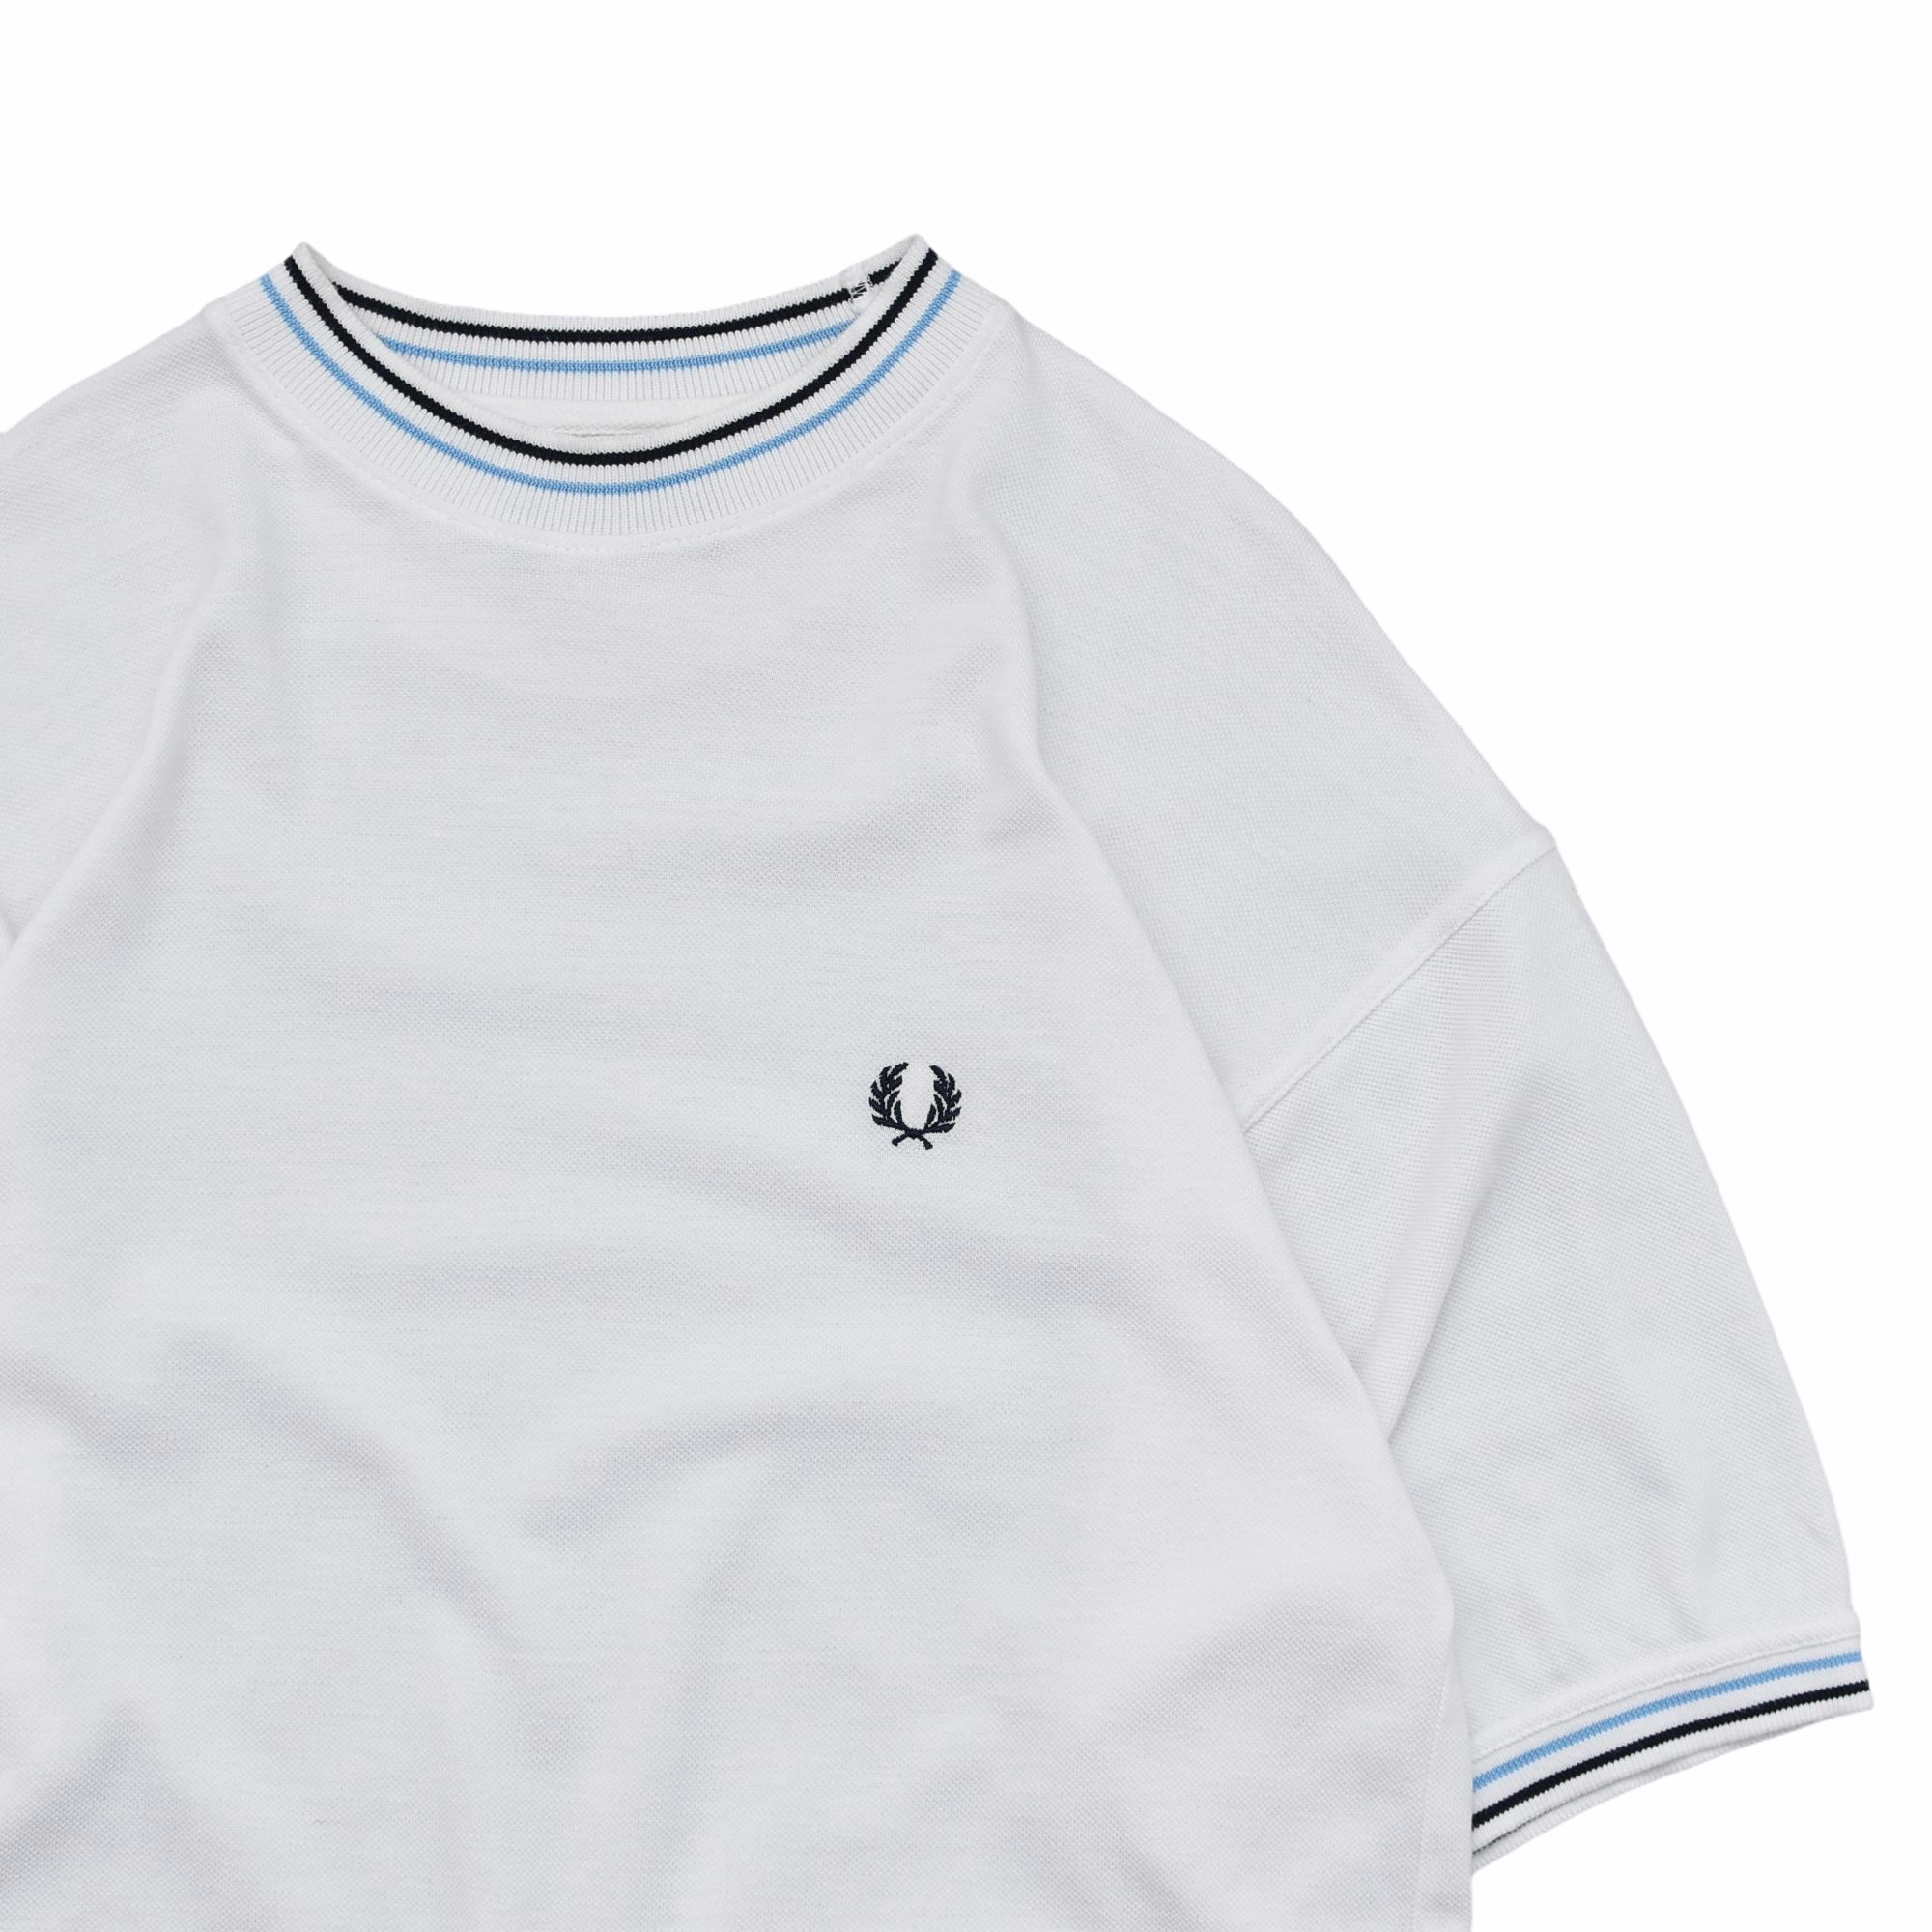 90's FRED PERRY moss stitch T shirt Made in Portugal